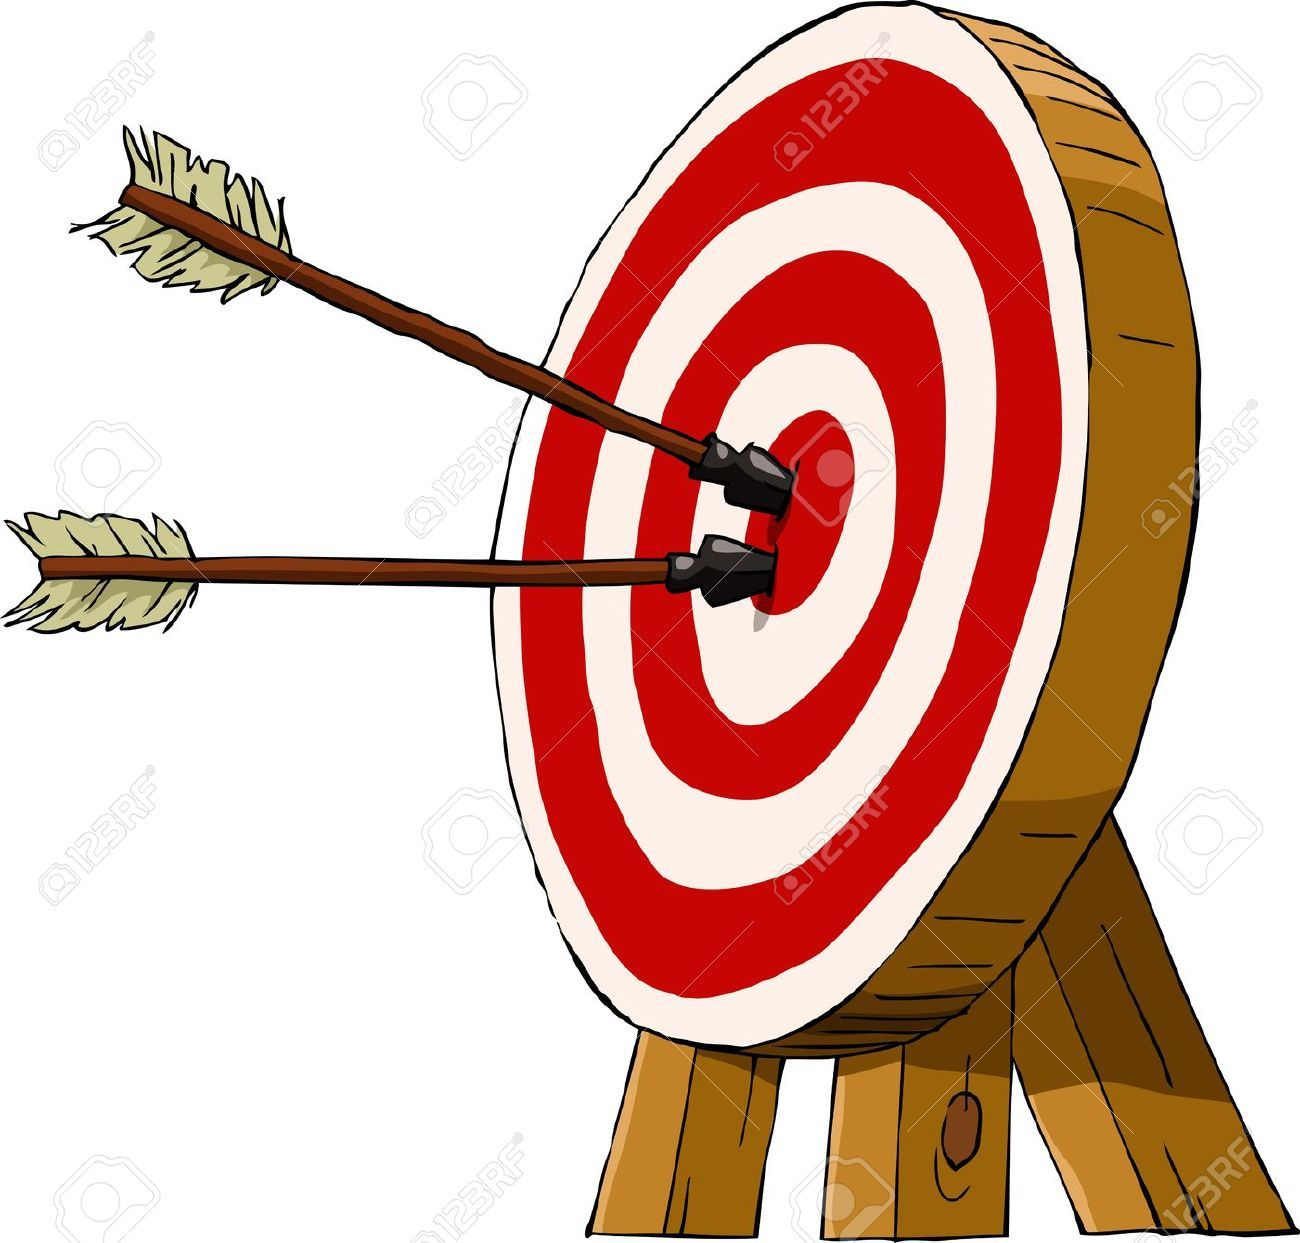 Free archery clipart images banner royalty free stock Archery Cliparts, Stock Vector And Royalty Free Archery ... banner royalty free stock